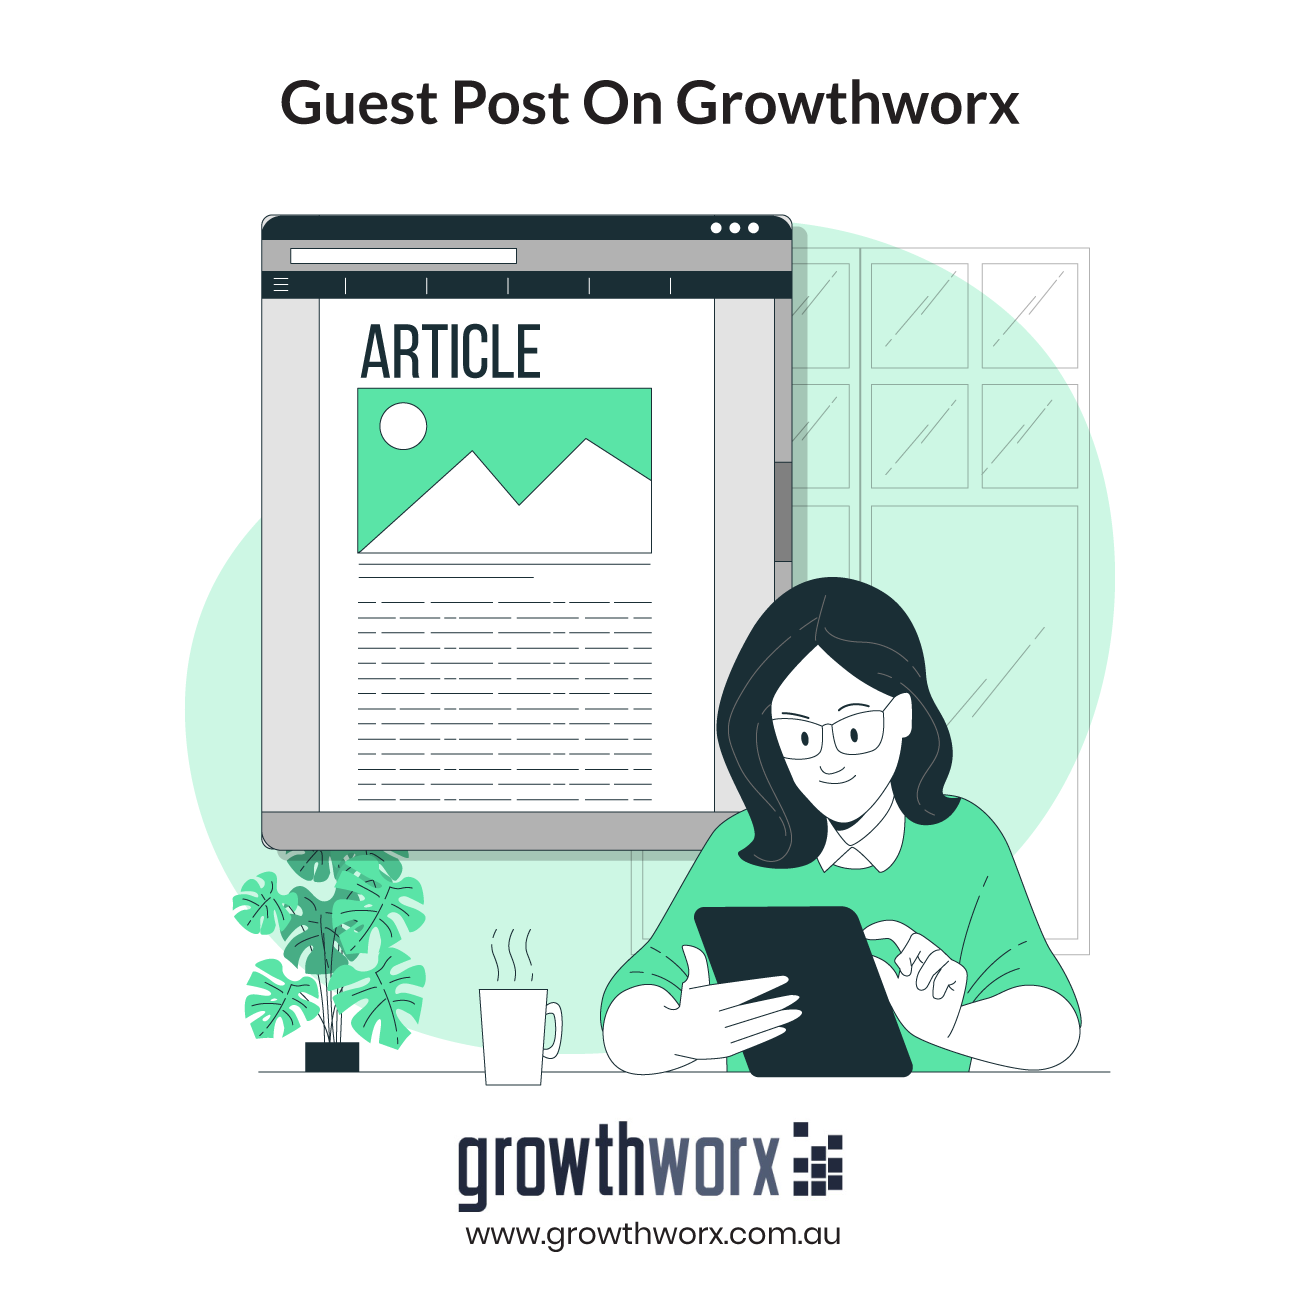 Do 1 guest post on Growthworx with high quality do follow backlinks 1